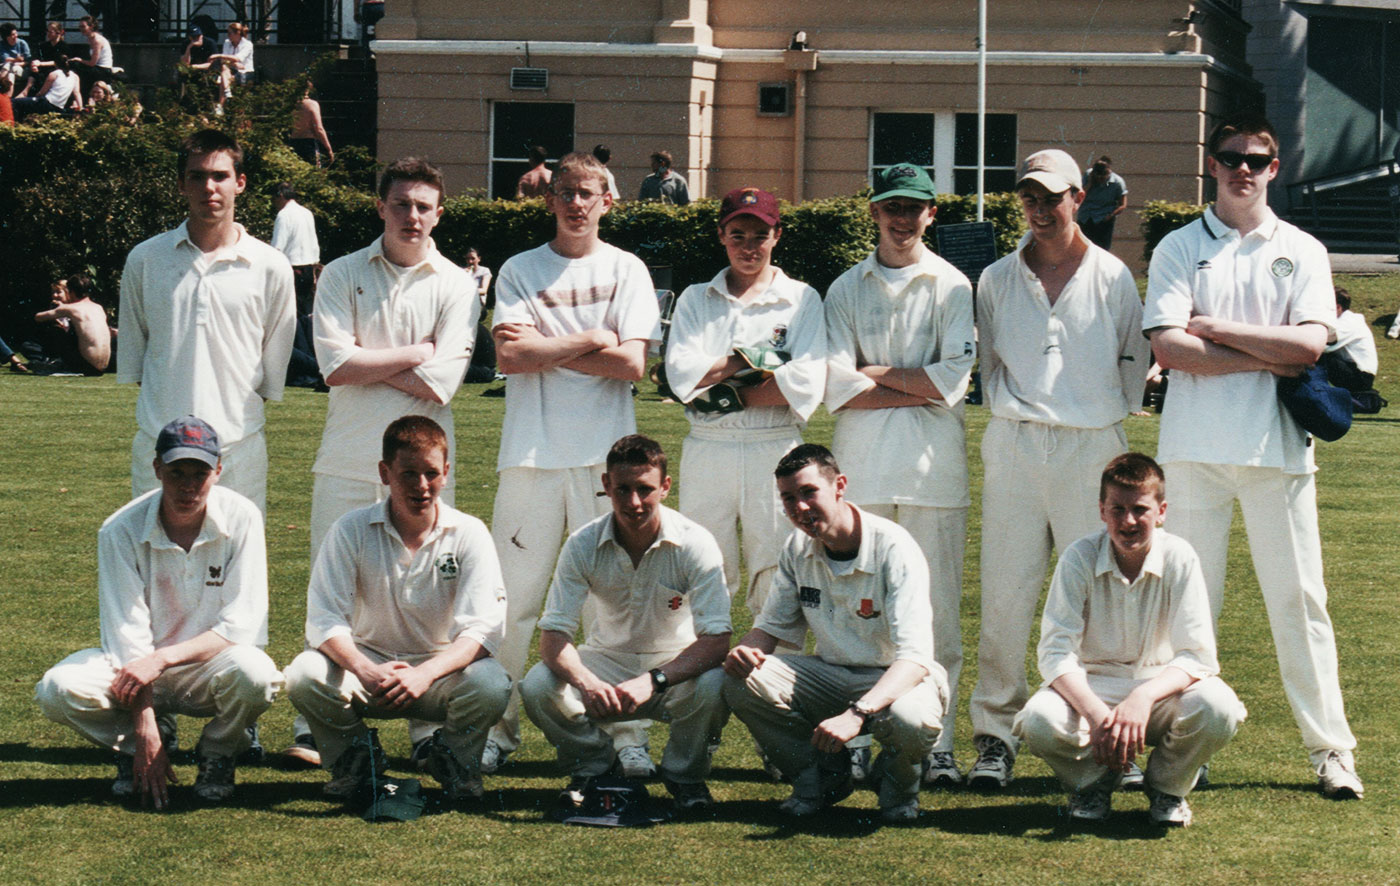 Morgan (squatting, second from left) with his CUS team after winning an Under-19 tournament, 2001